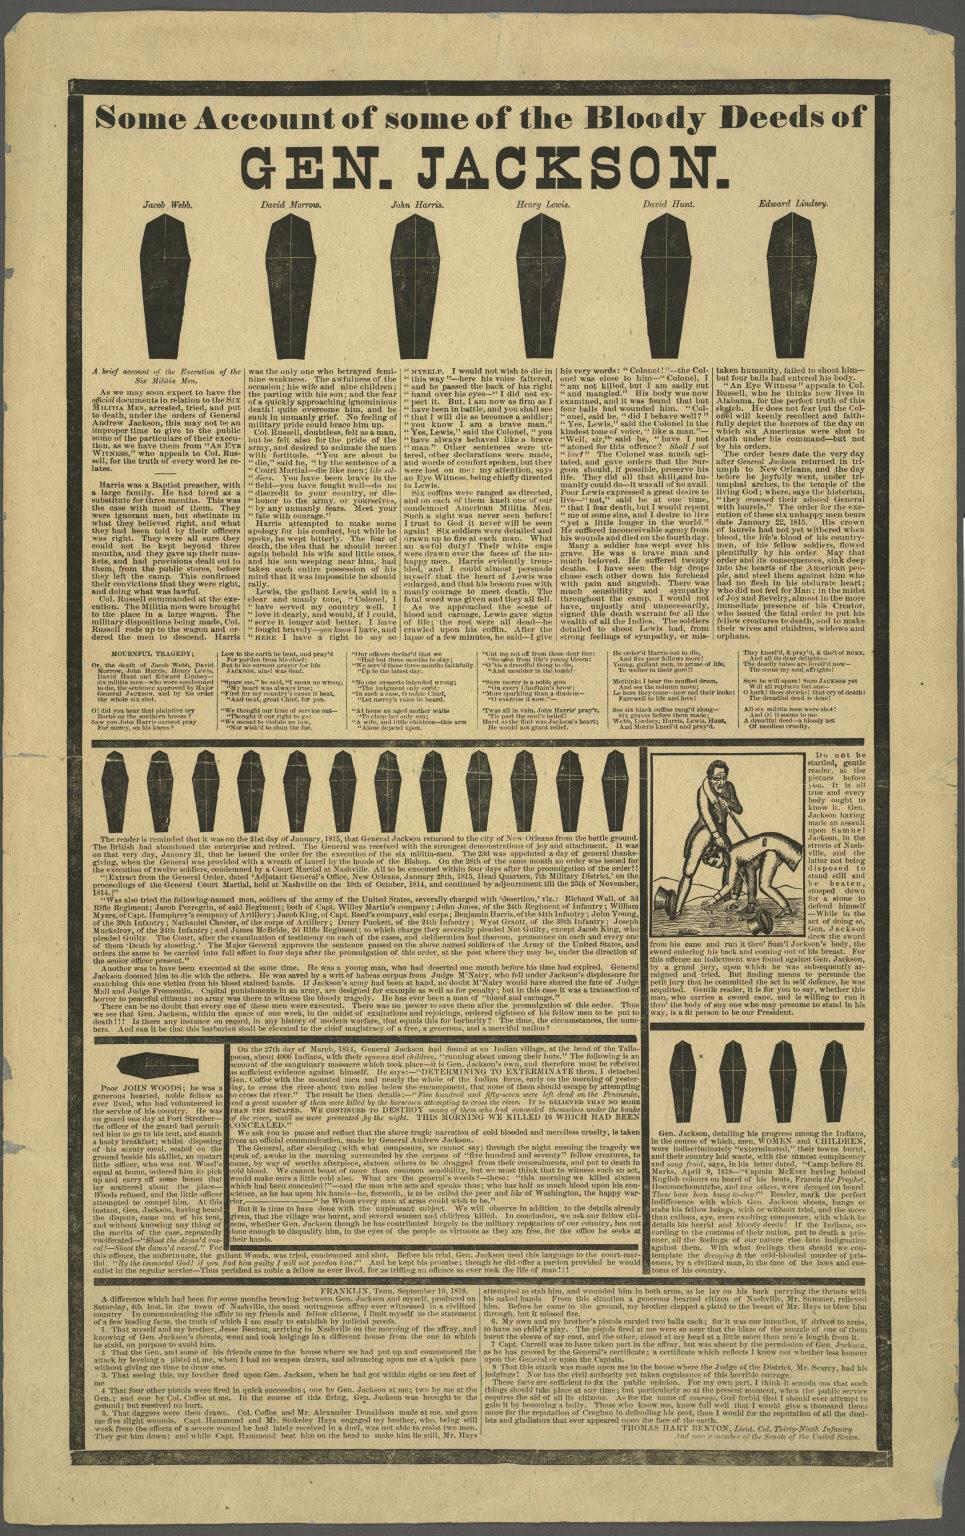 A poster-sized piece of paper that has about 2,000 words on it summarizing all the people Jackson supposedly killed, each of them represented by a black coffin.